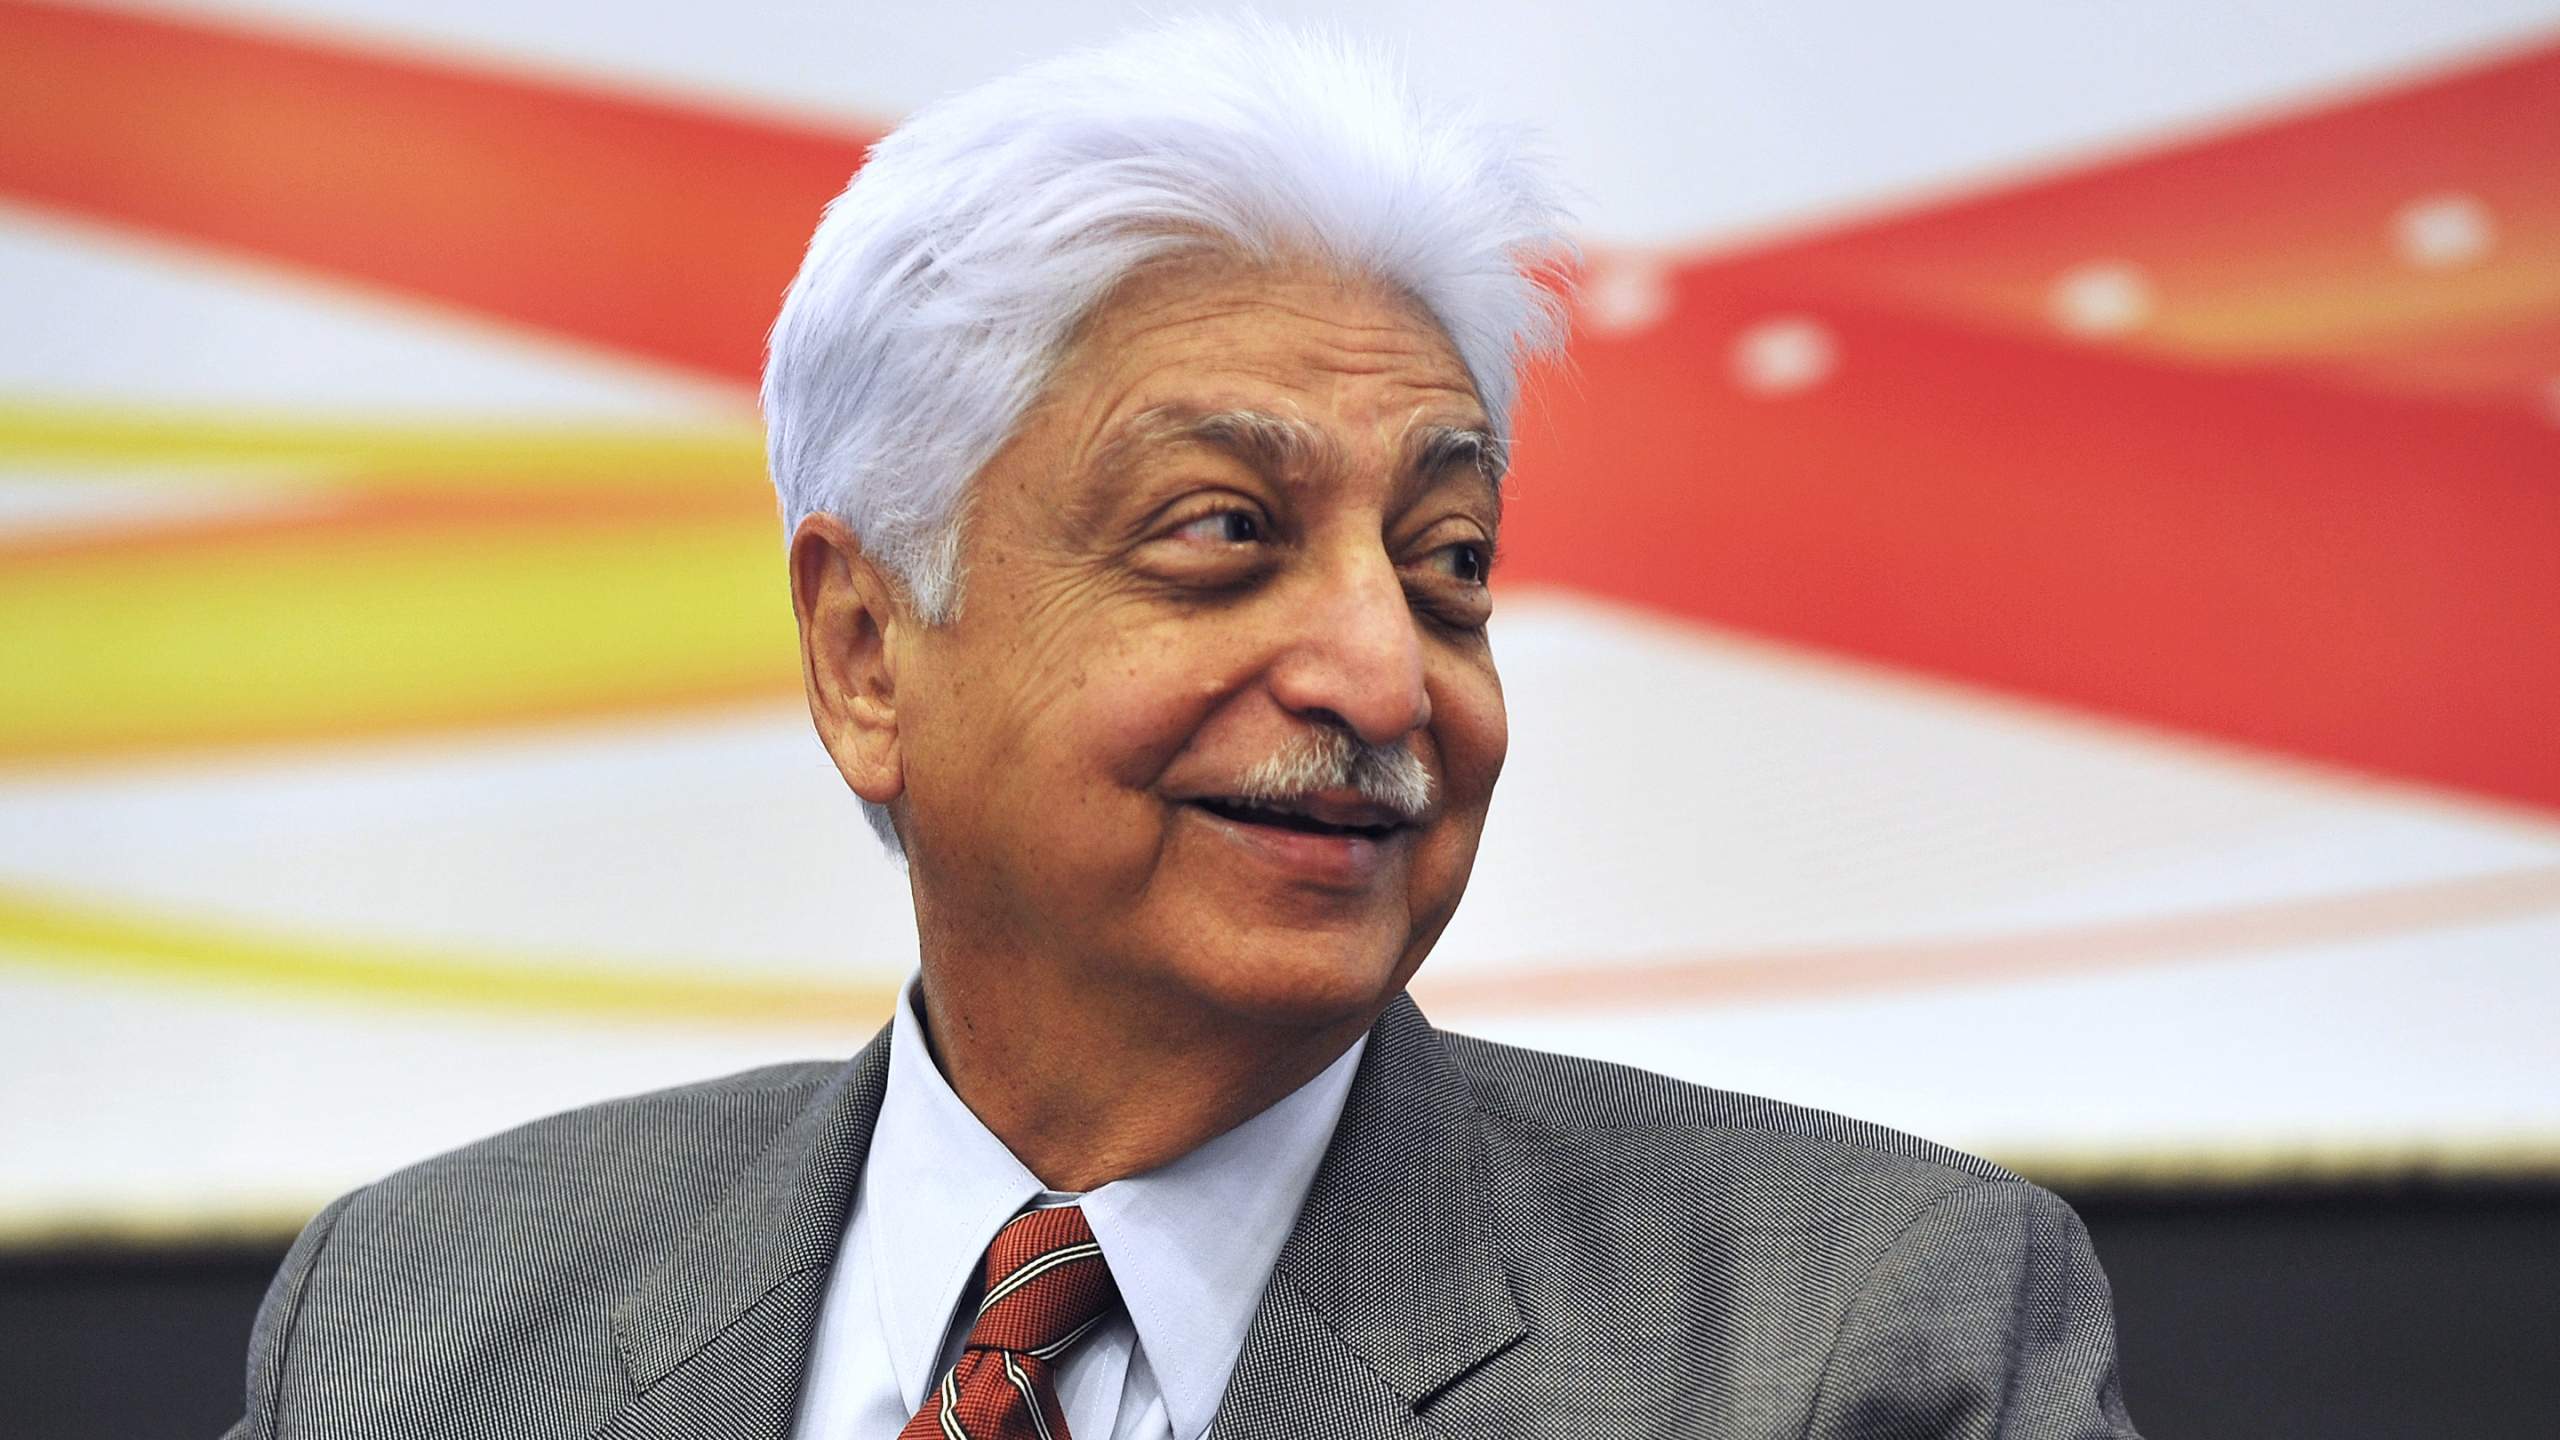 Indian Chairman of Wipro Limited, Azim Premji, smiles during a press conference held to announce the company's 2nd quarter results in Bangalore on November 2, 2012. (Credit: Manjunath Kiran/AFP/Getty Images)